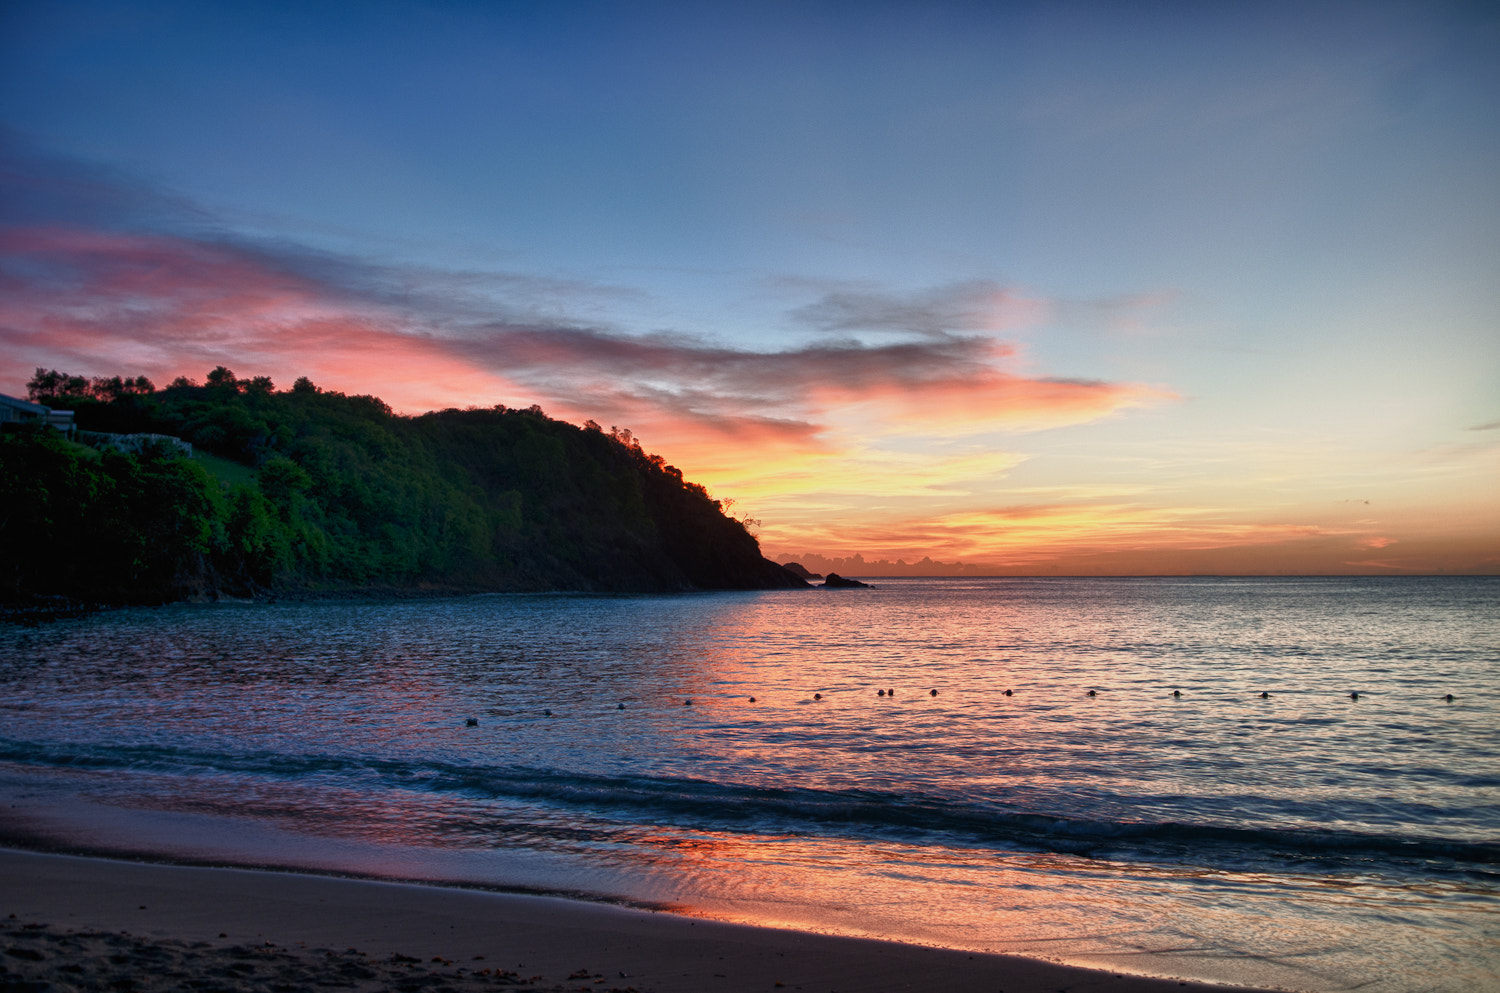 Photograph St Lucia beach sunset by Martin Tyler on 500px